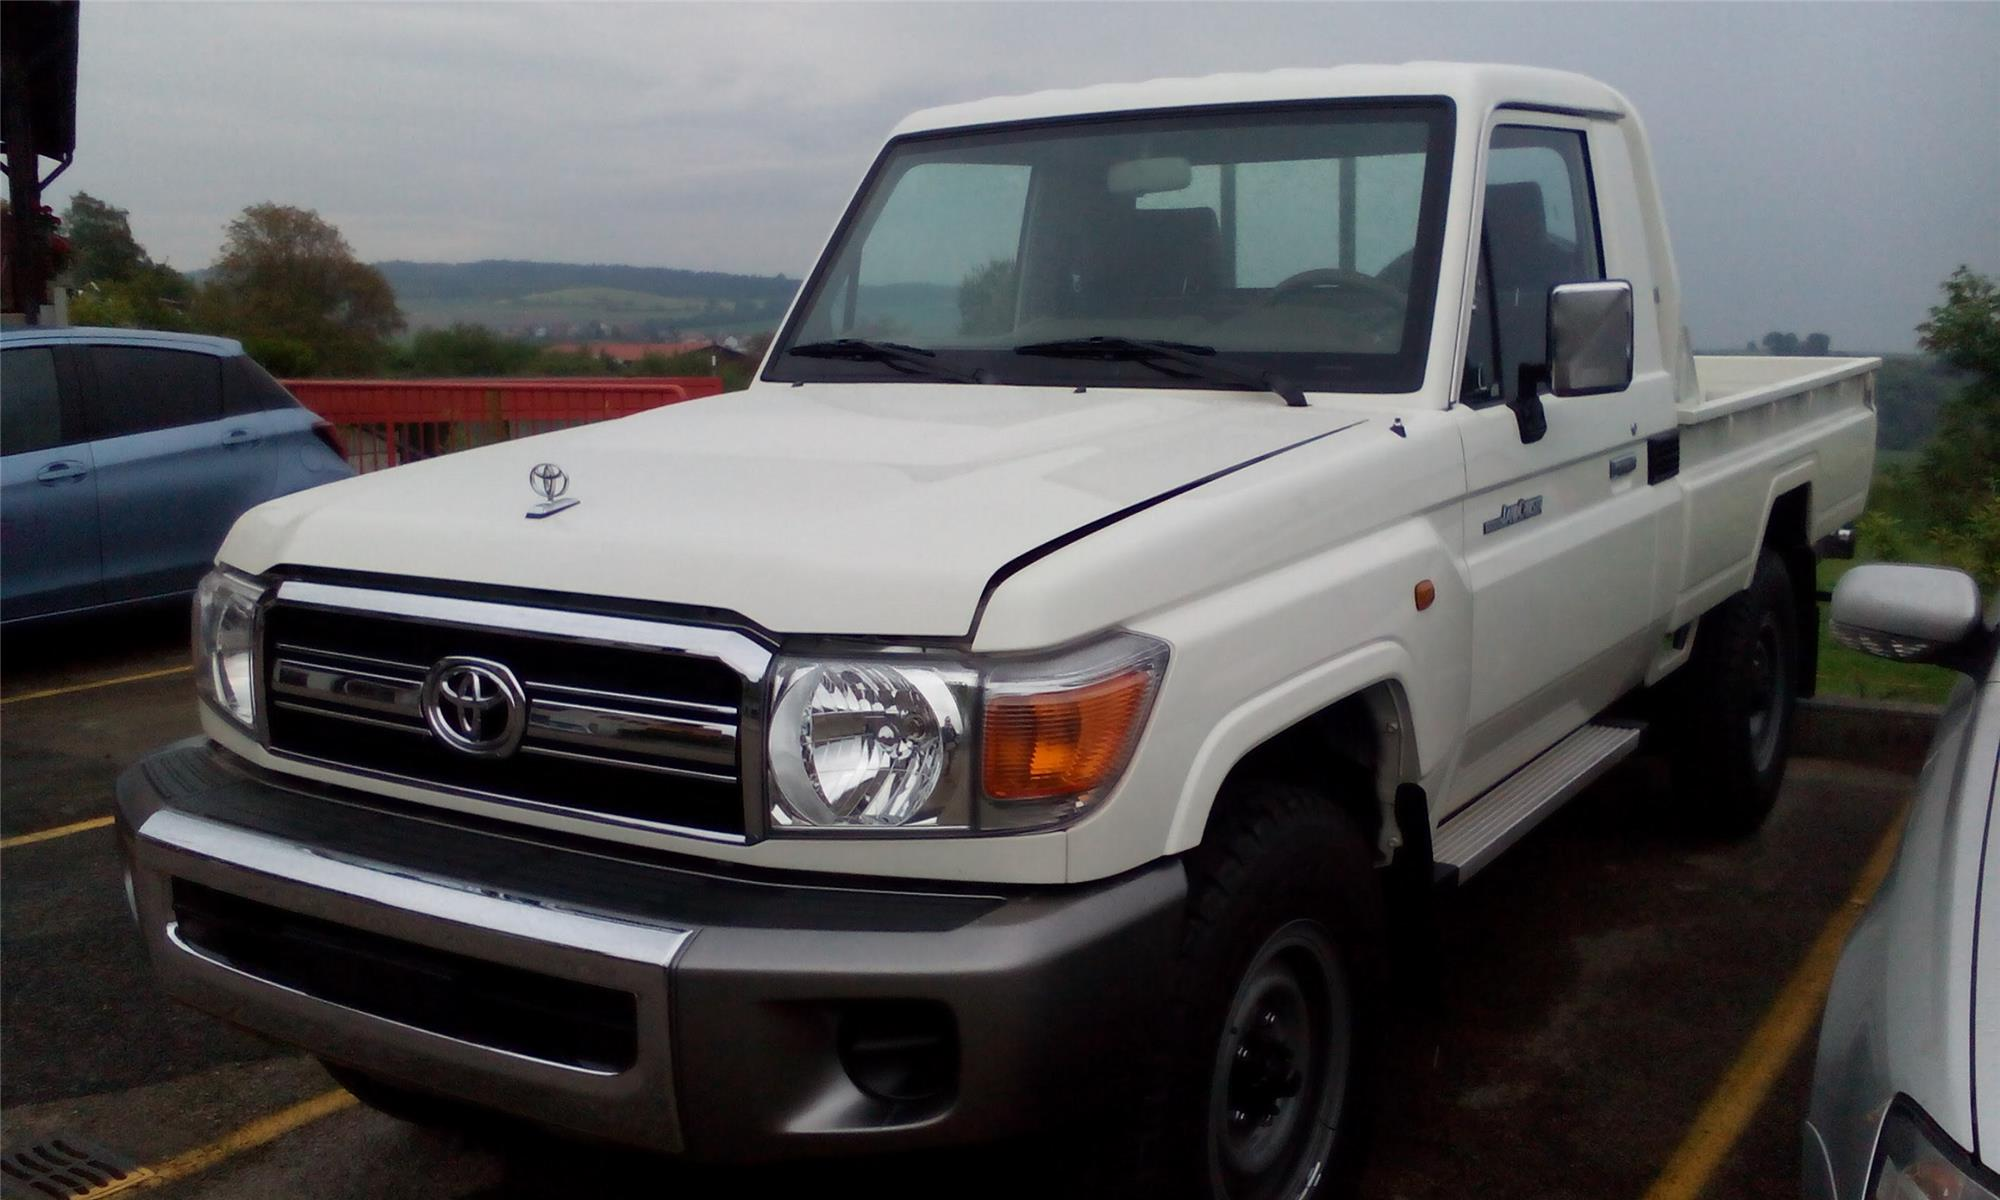 Toyota Land Cruiser GRJ79 pick-up single cab - facelift